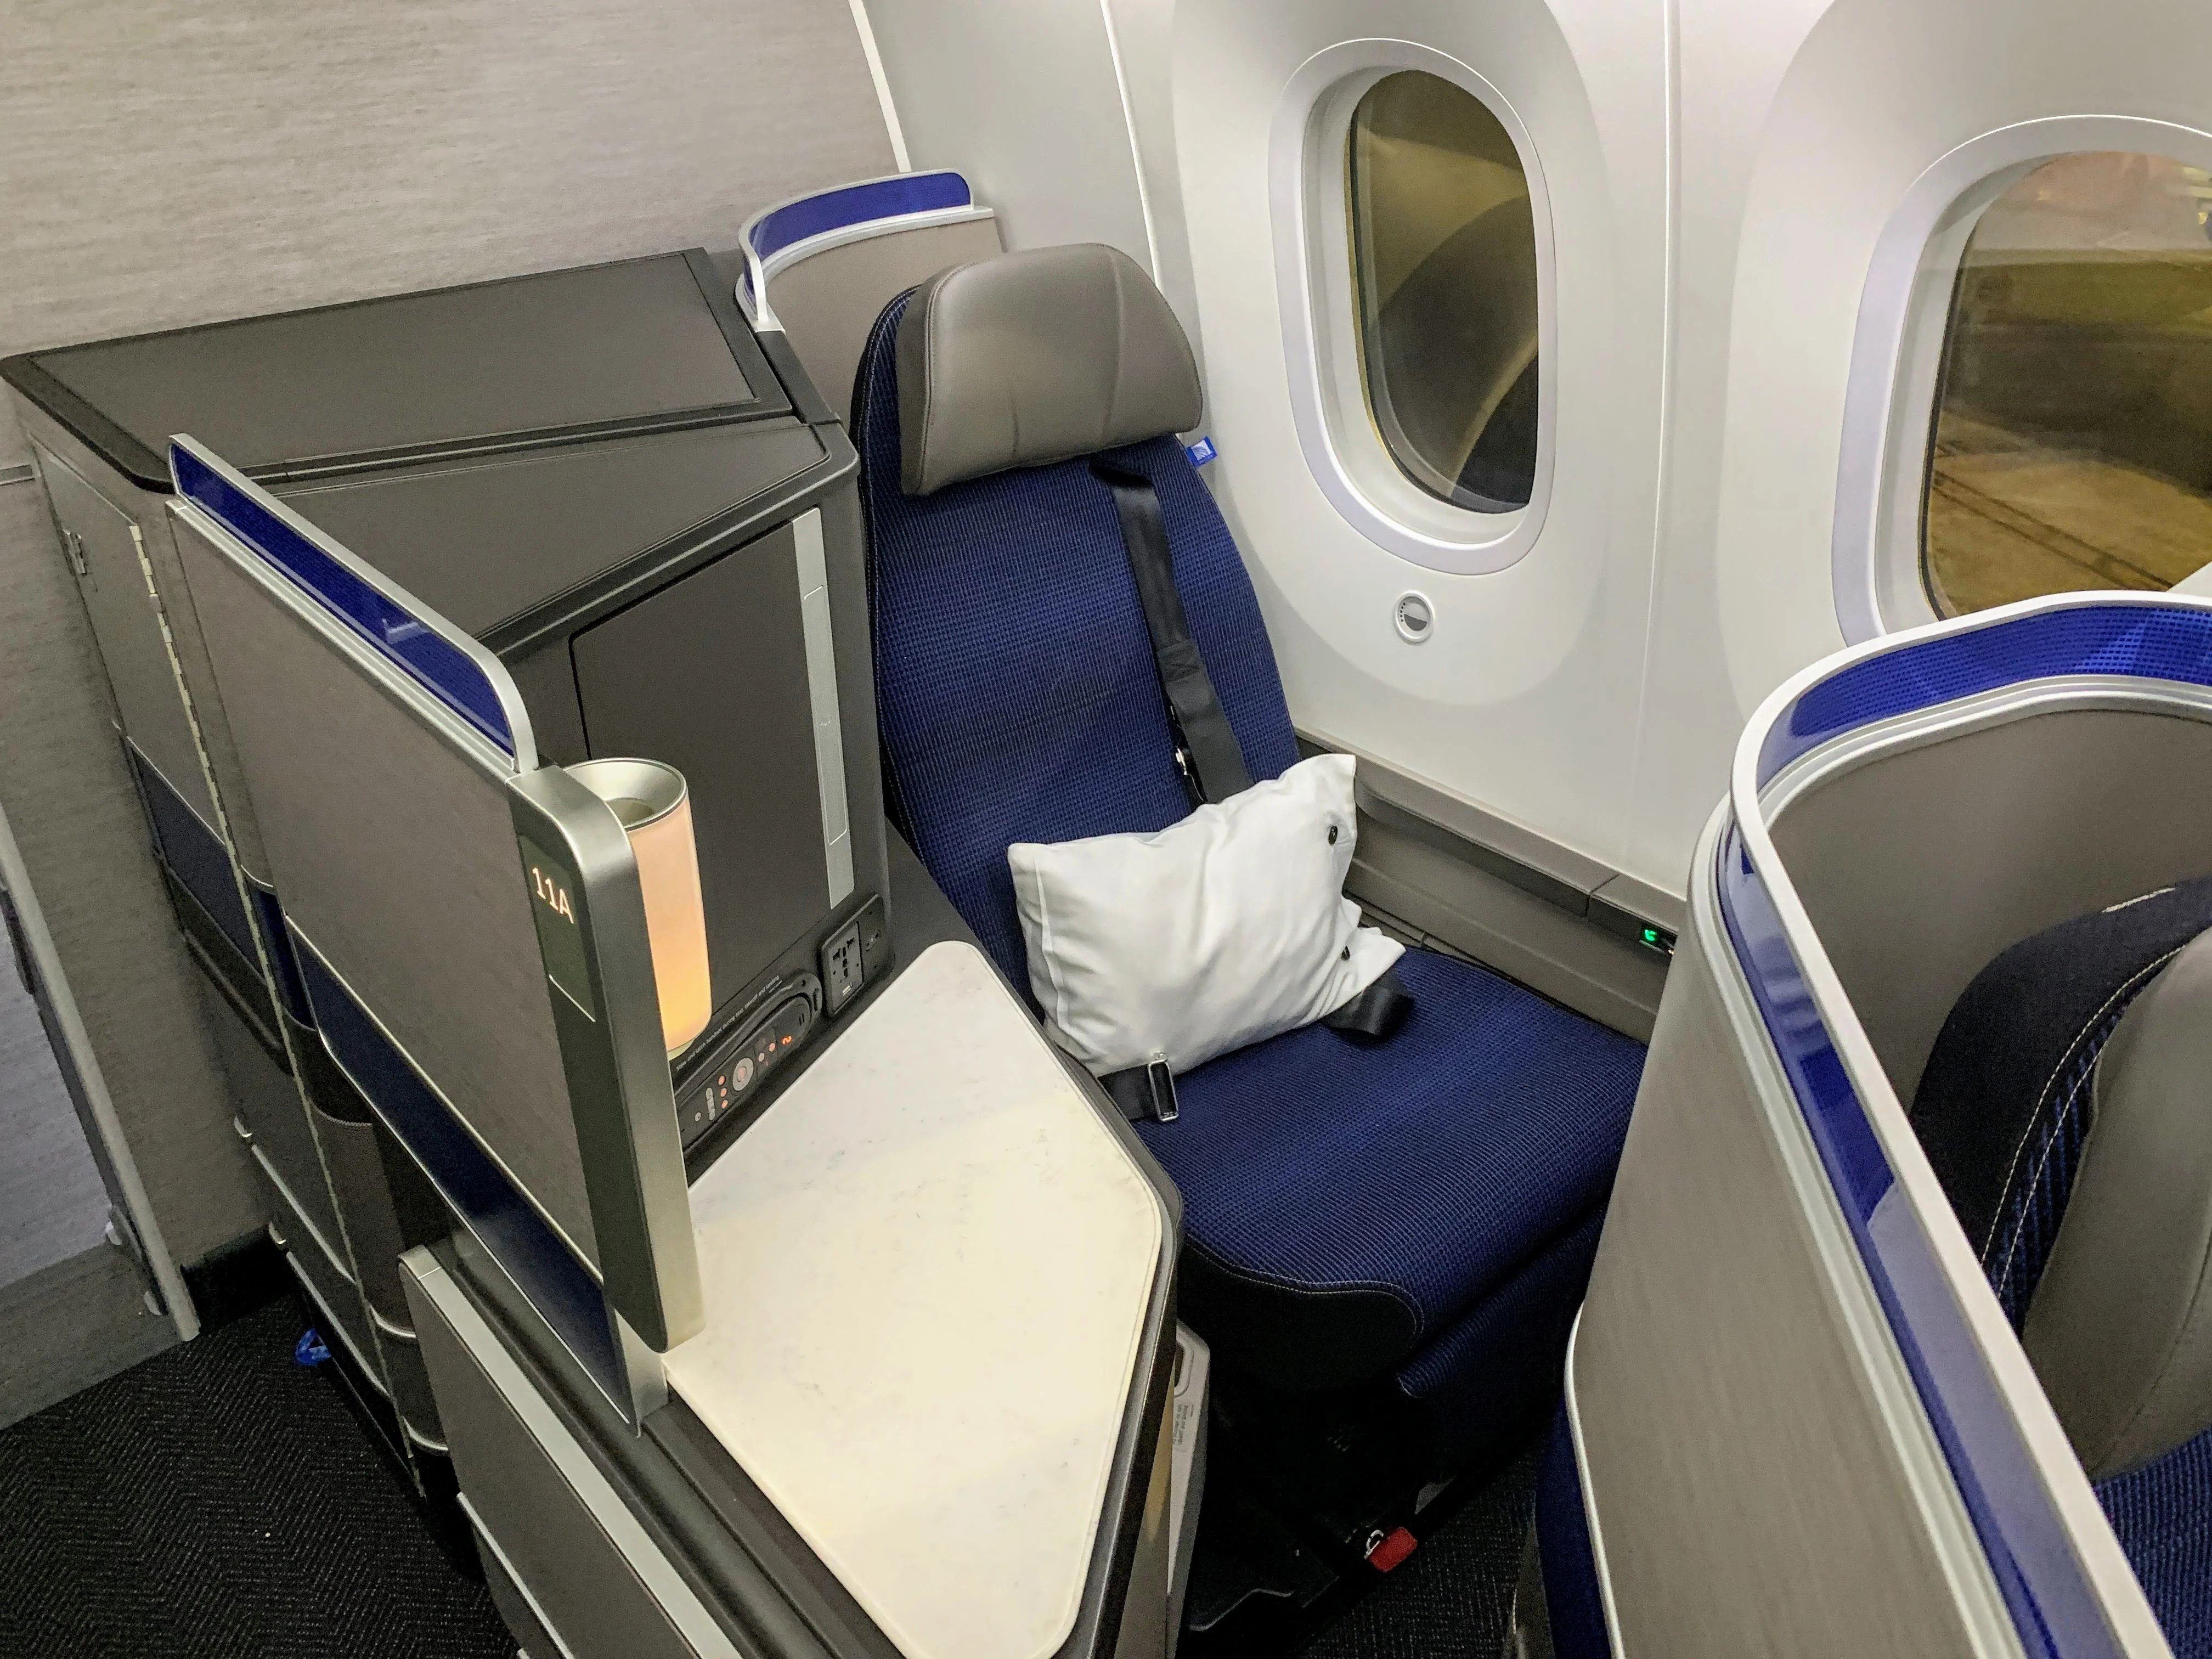 What It Was Like to Fly United's Newest 787-10 Dreamliner